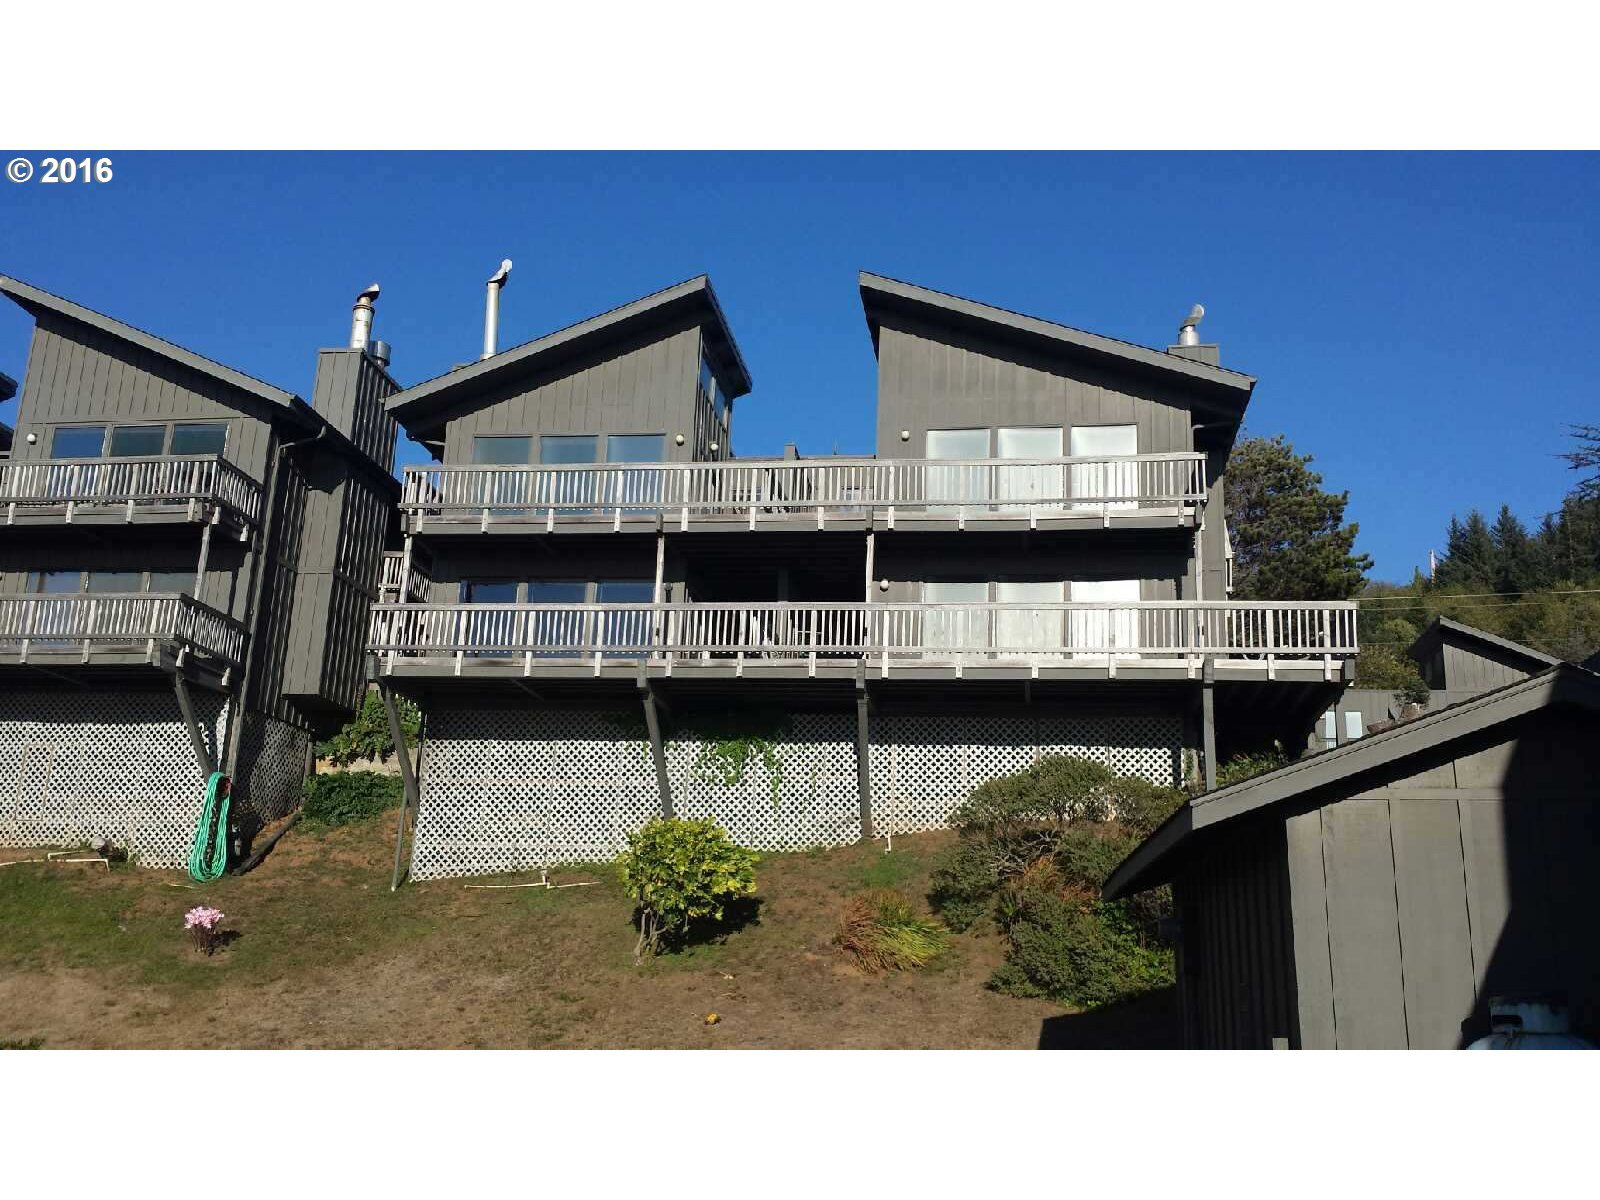 29134 ELLENSBURG AVE 5 Gold Beach, Brookings Home Listings - Pacific Coastal Real Estate